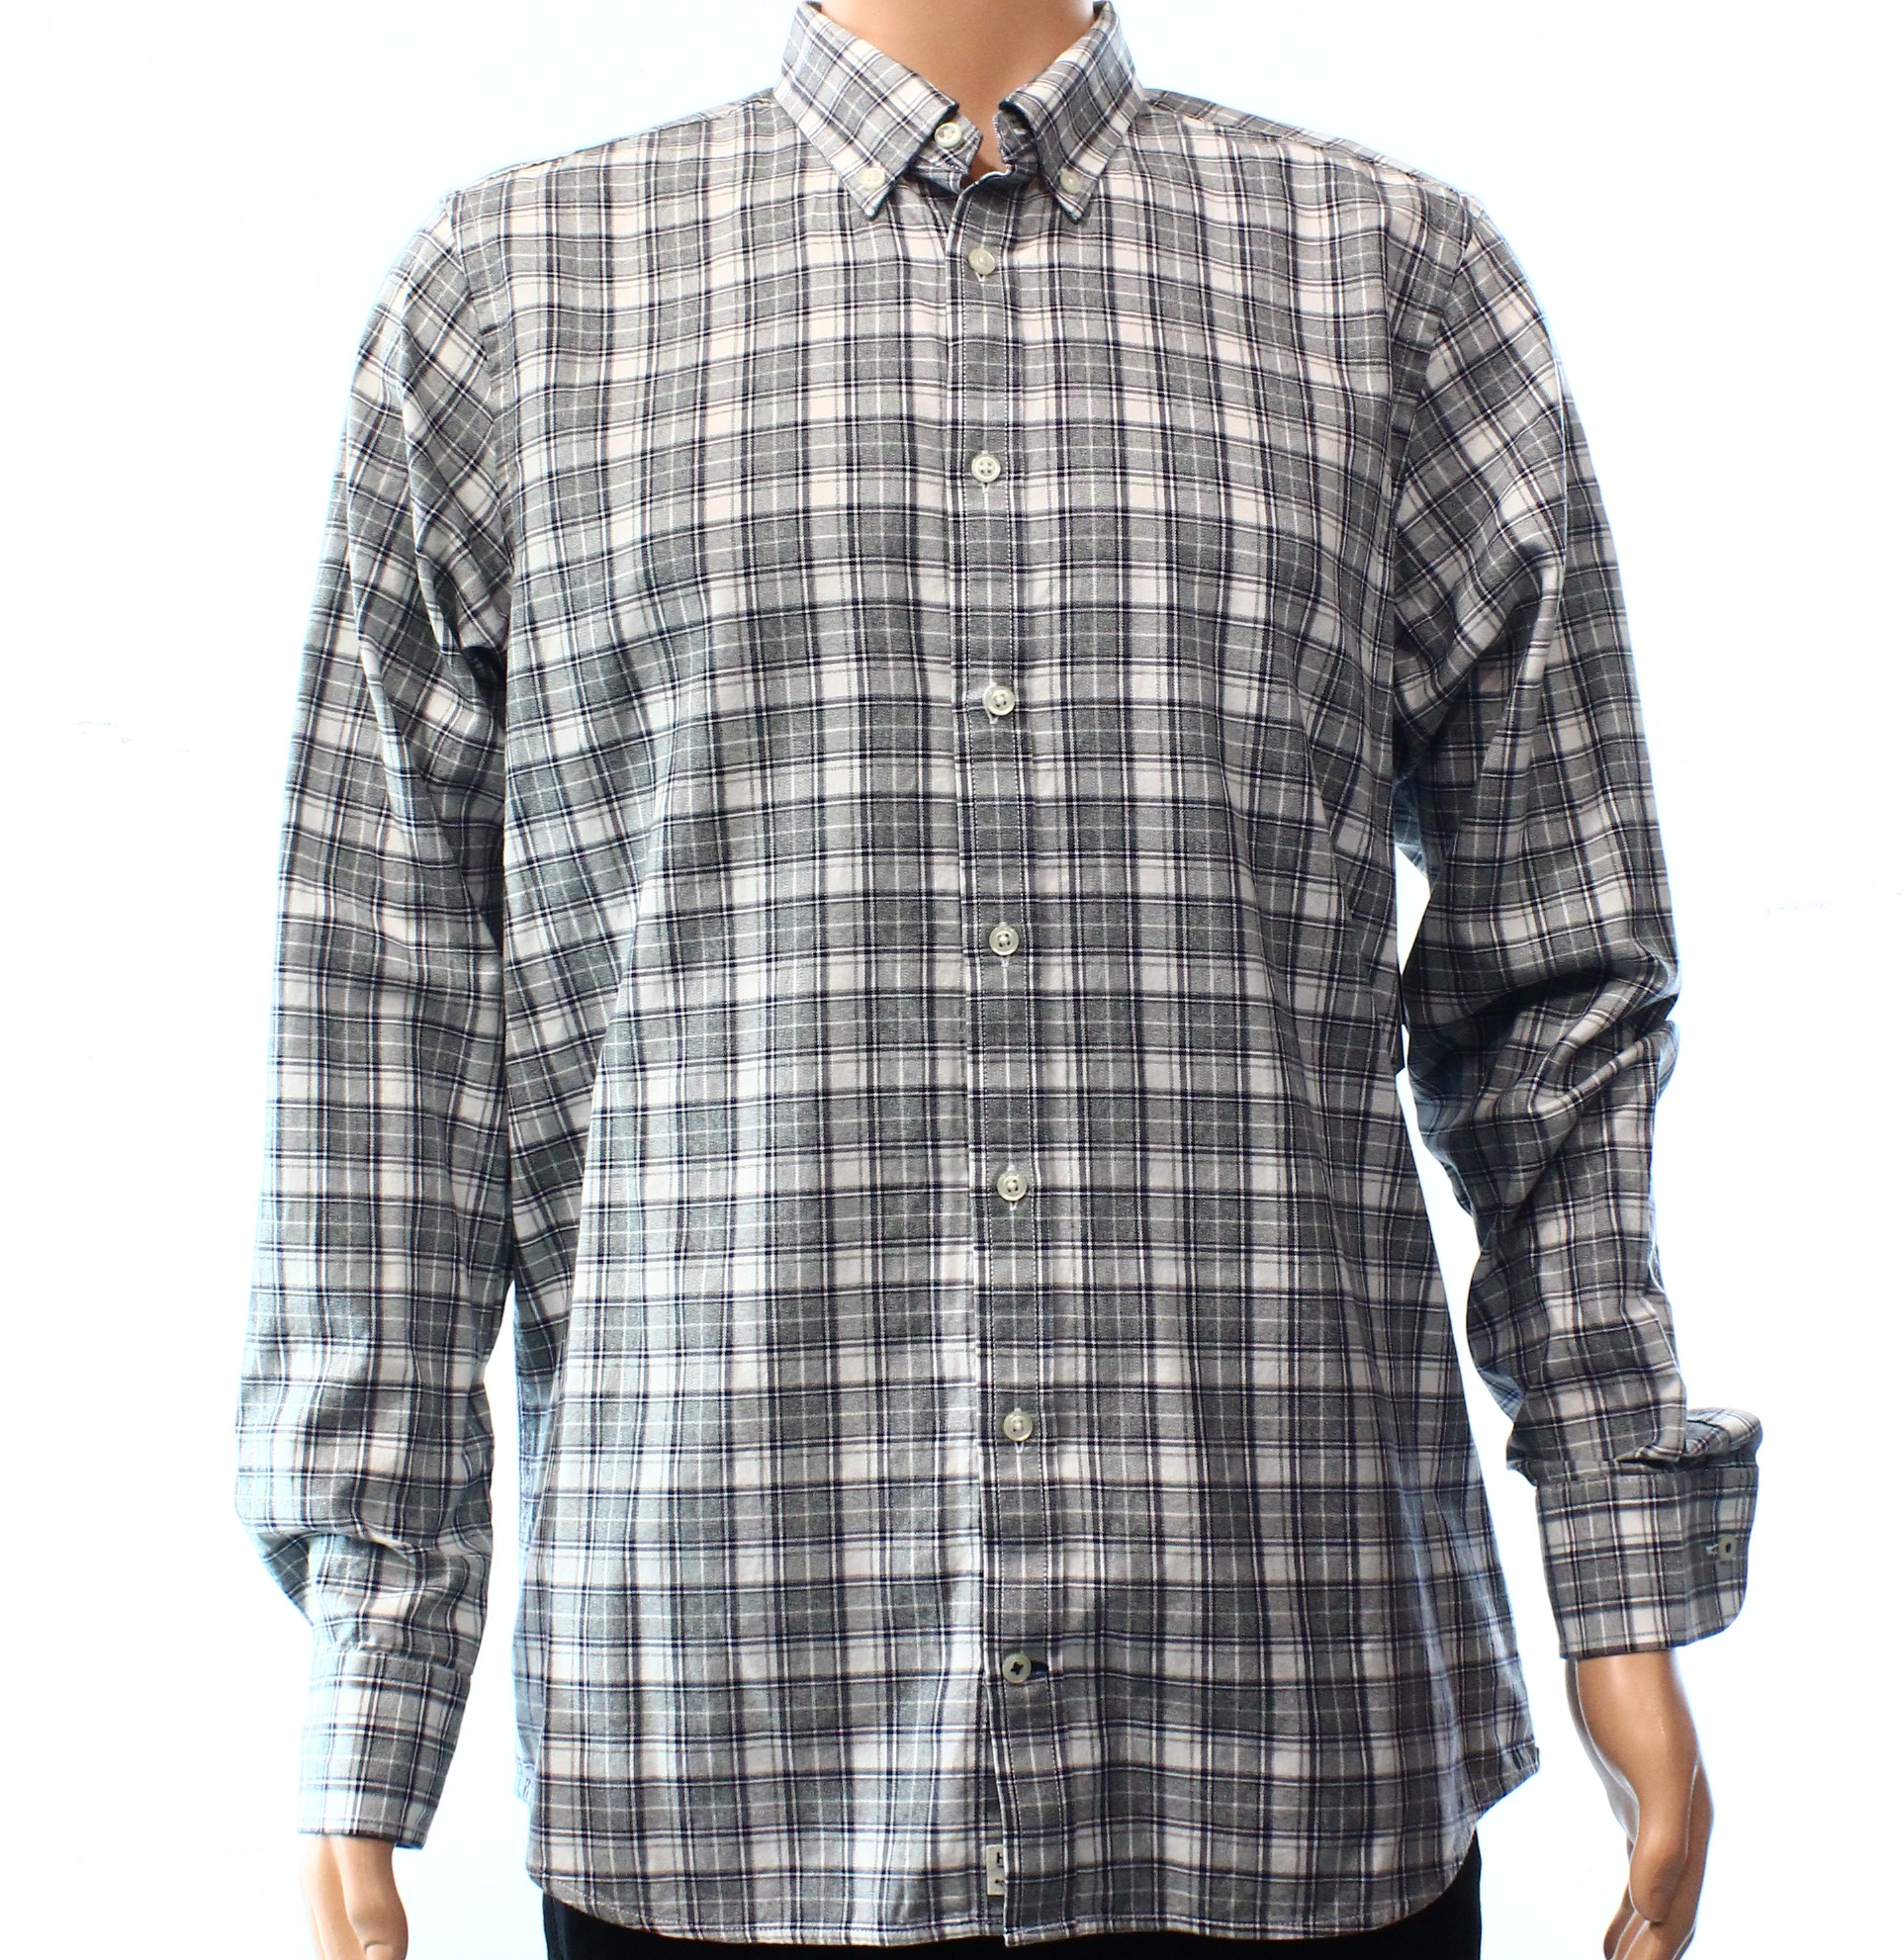 Tommy Hilfiger NEW Gray Mens Size XL Plaid Slim Fit Button Down Shirt